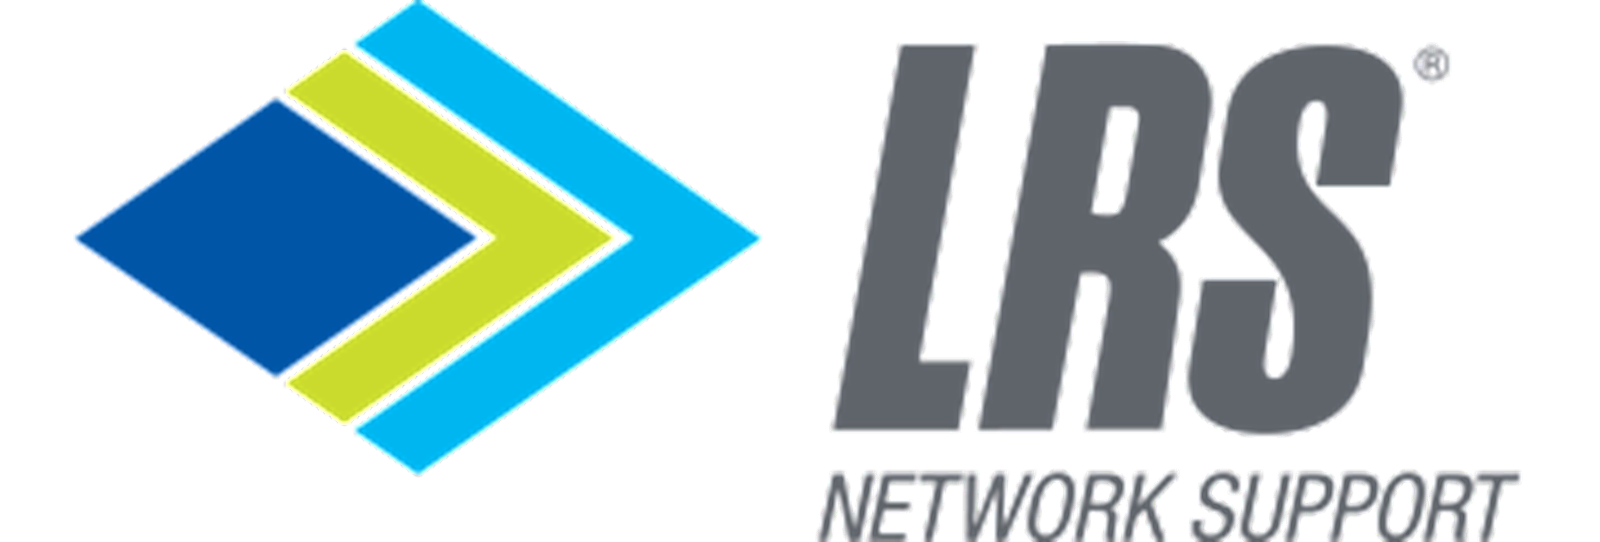 lrs network support logo